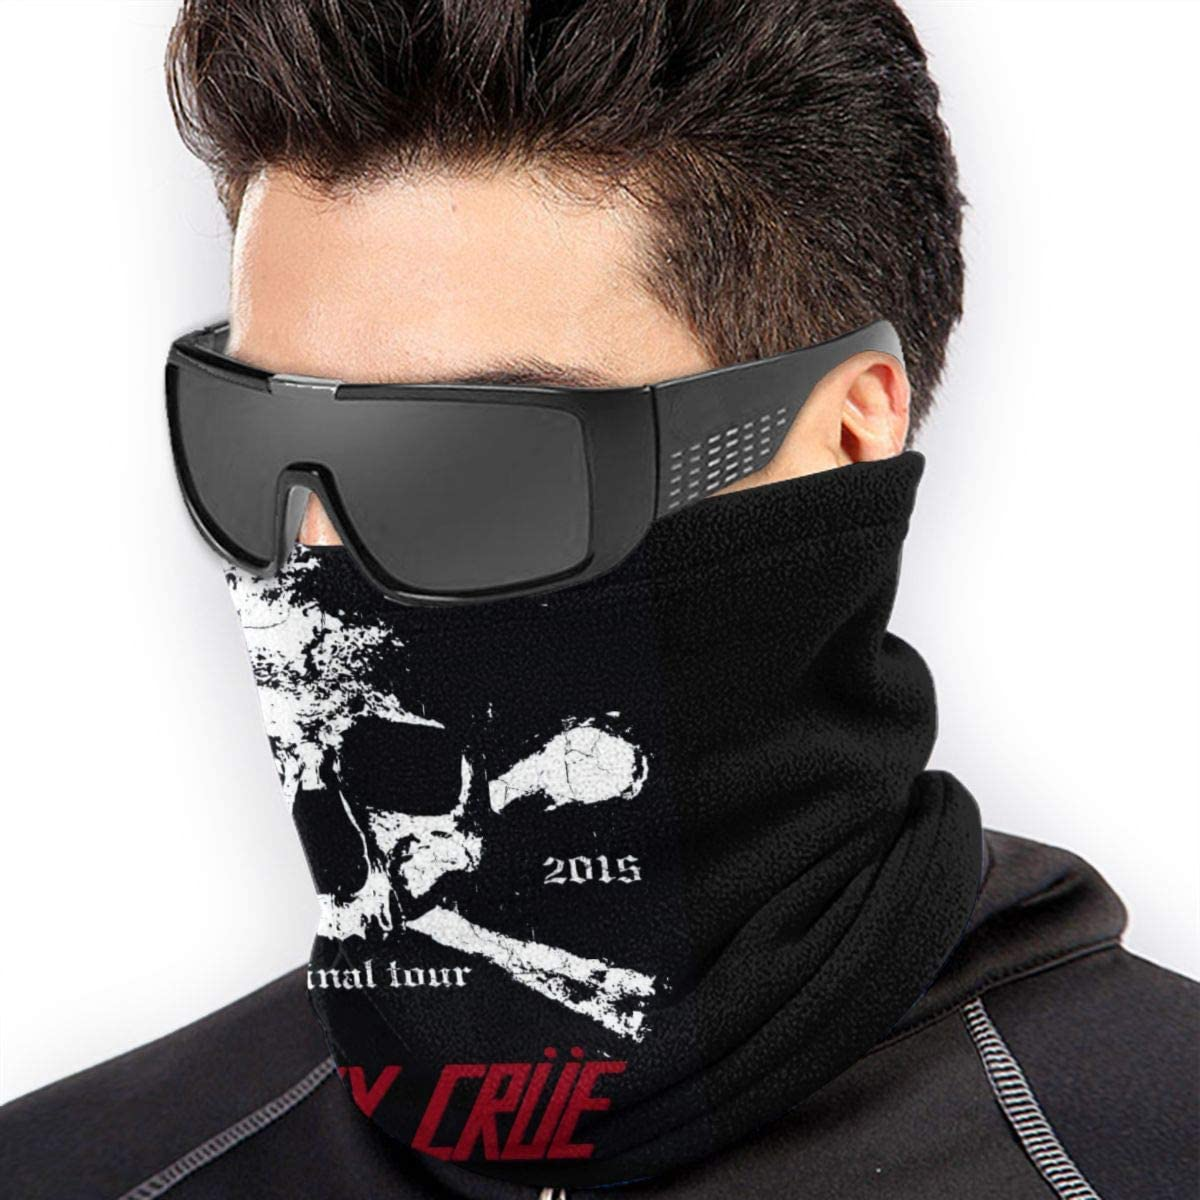 Motley Crue Highly Elastic Warm Microfiber Neck Thermal Mask Scarf Unisex Windproof Suitable For Winter